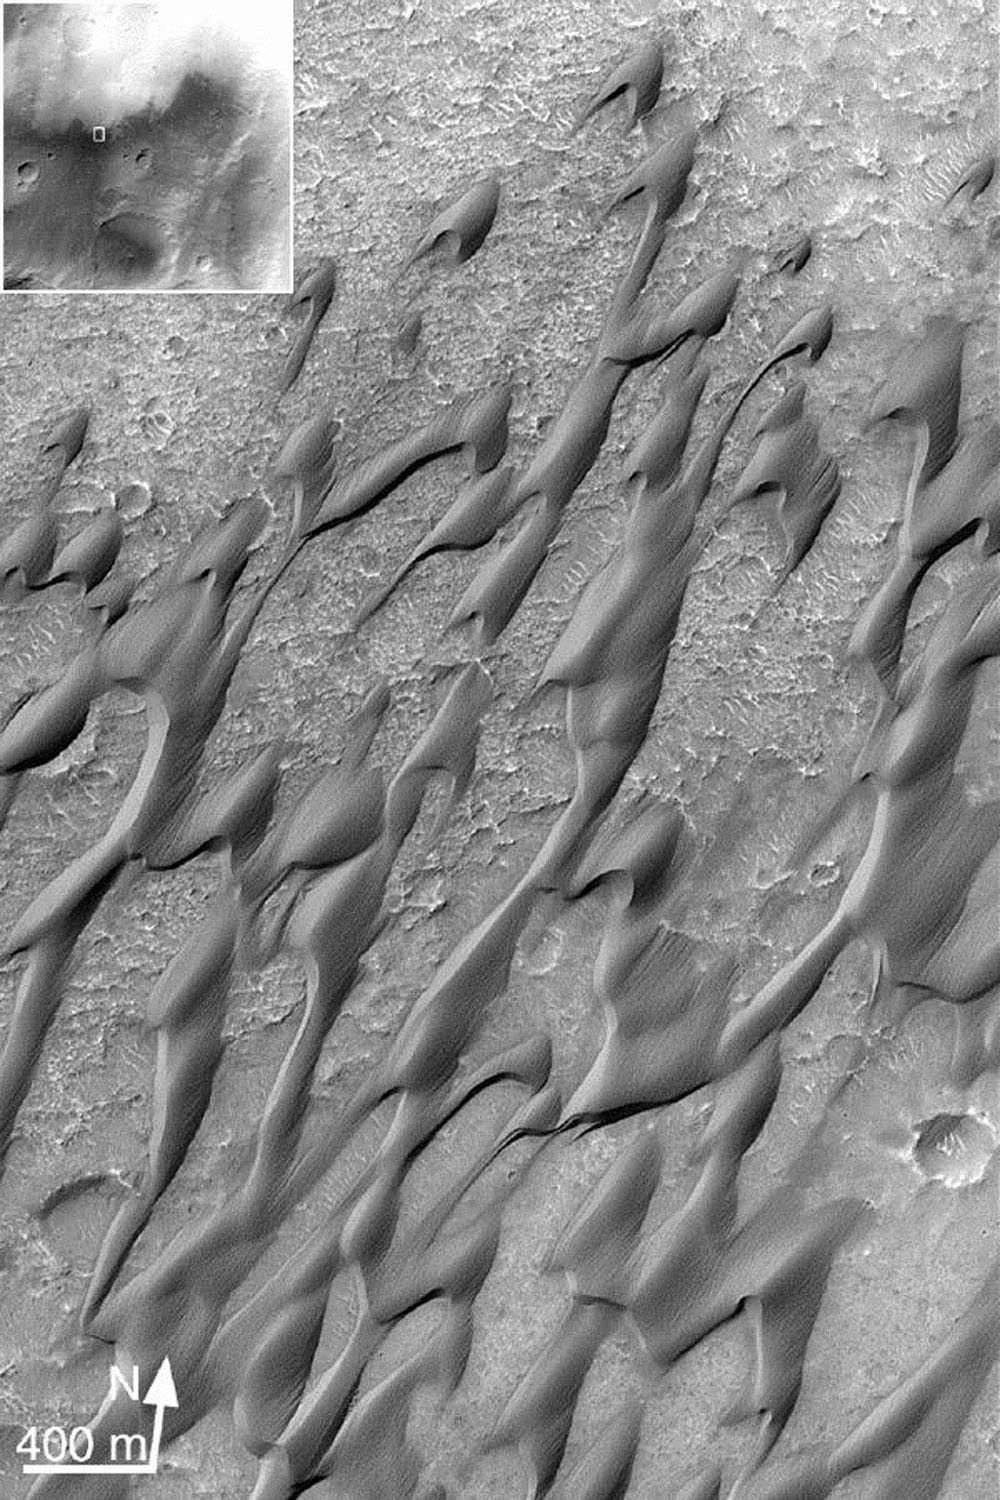 NASA's Mars Global Surveyor shows erosional streaks on dunes Herschel Crater on Mars which means that the dunes are indurated (cemented).